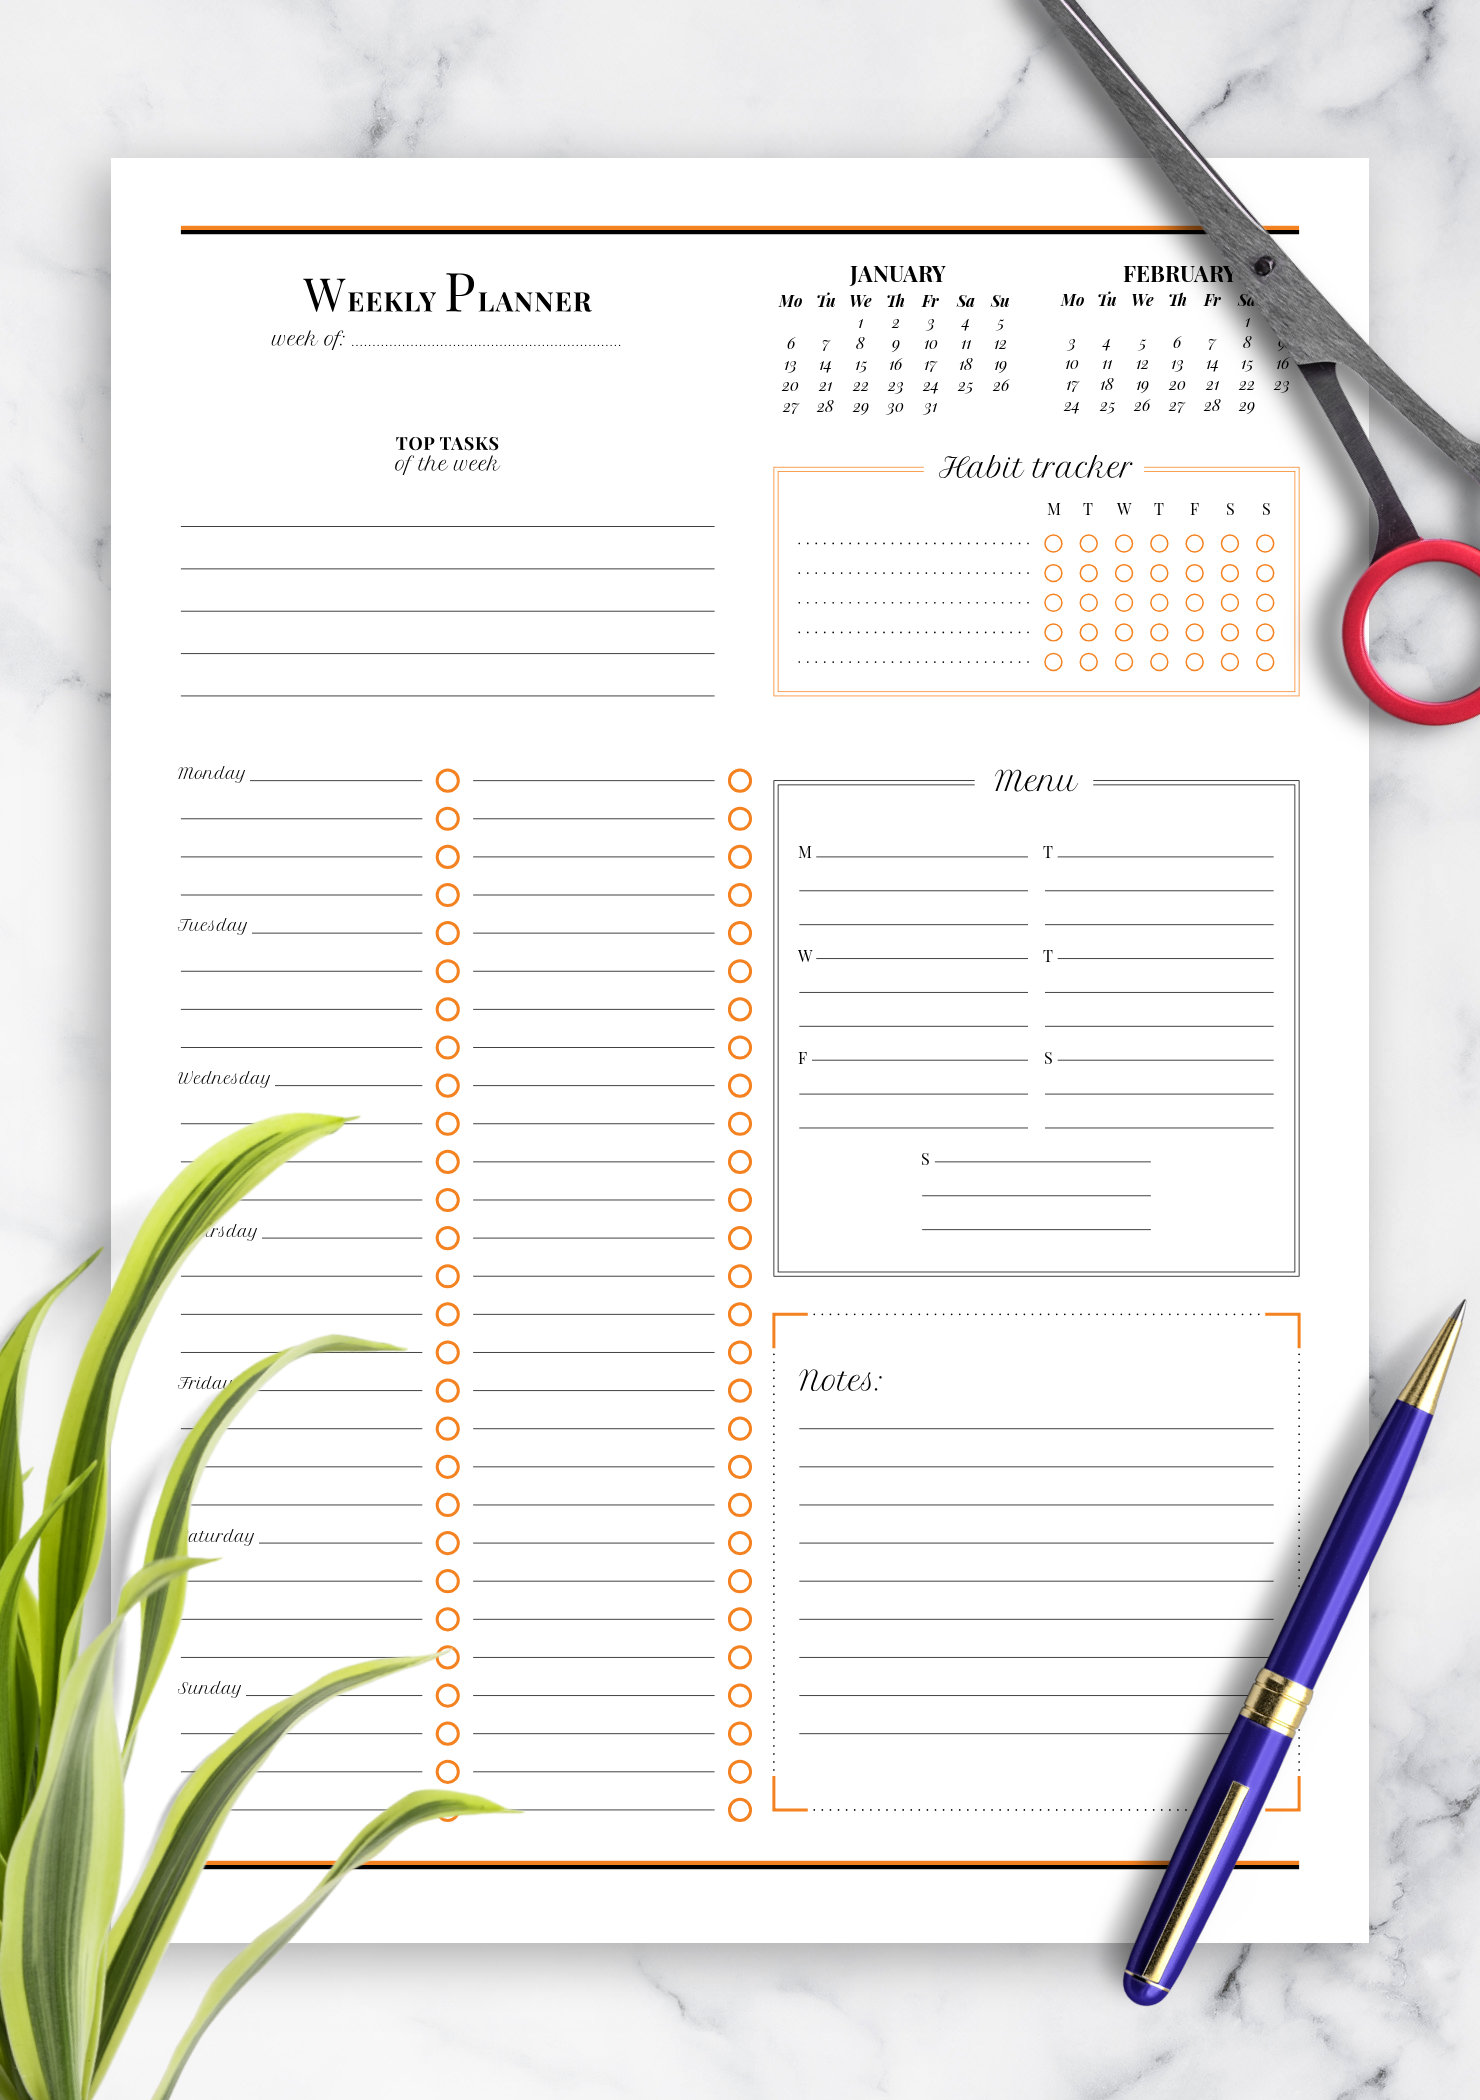 photo relating to Habit Tracker Free Printable titled No cost Printable Weekly planner with behavior tracker PDF Down load